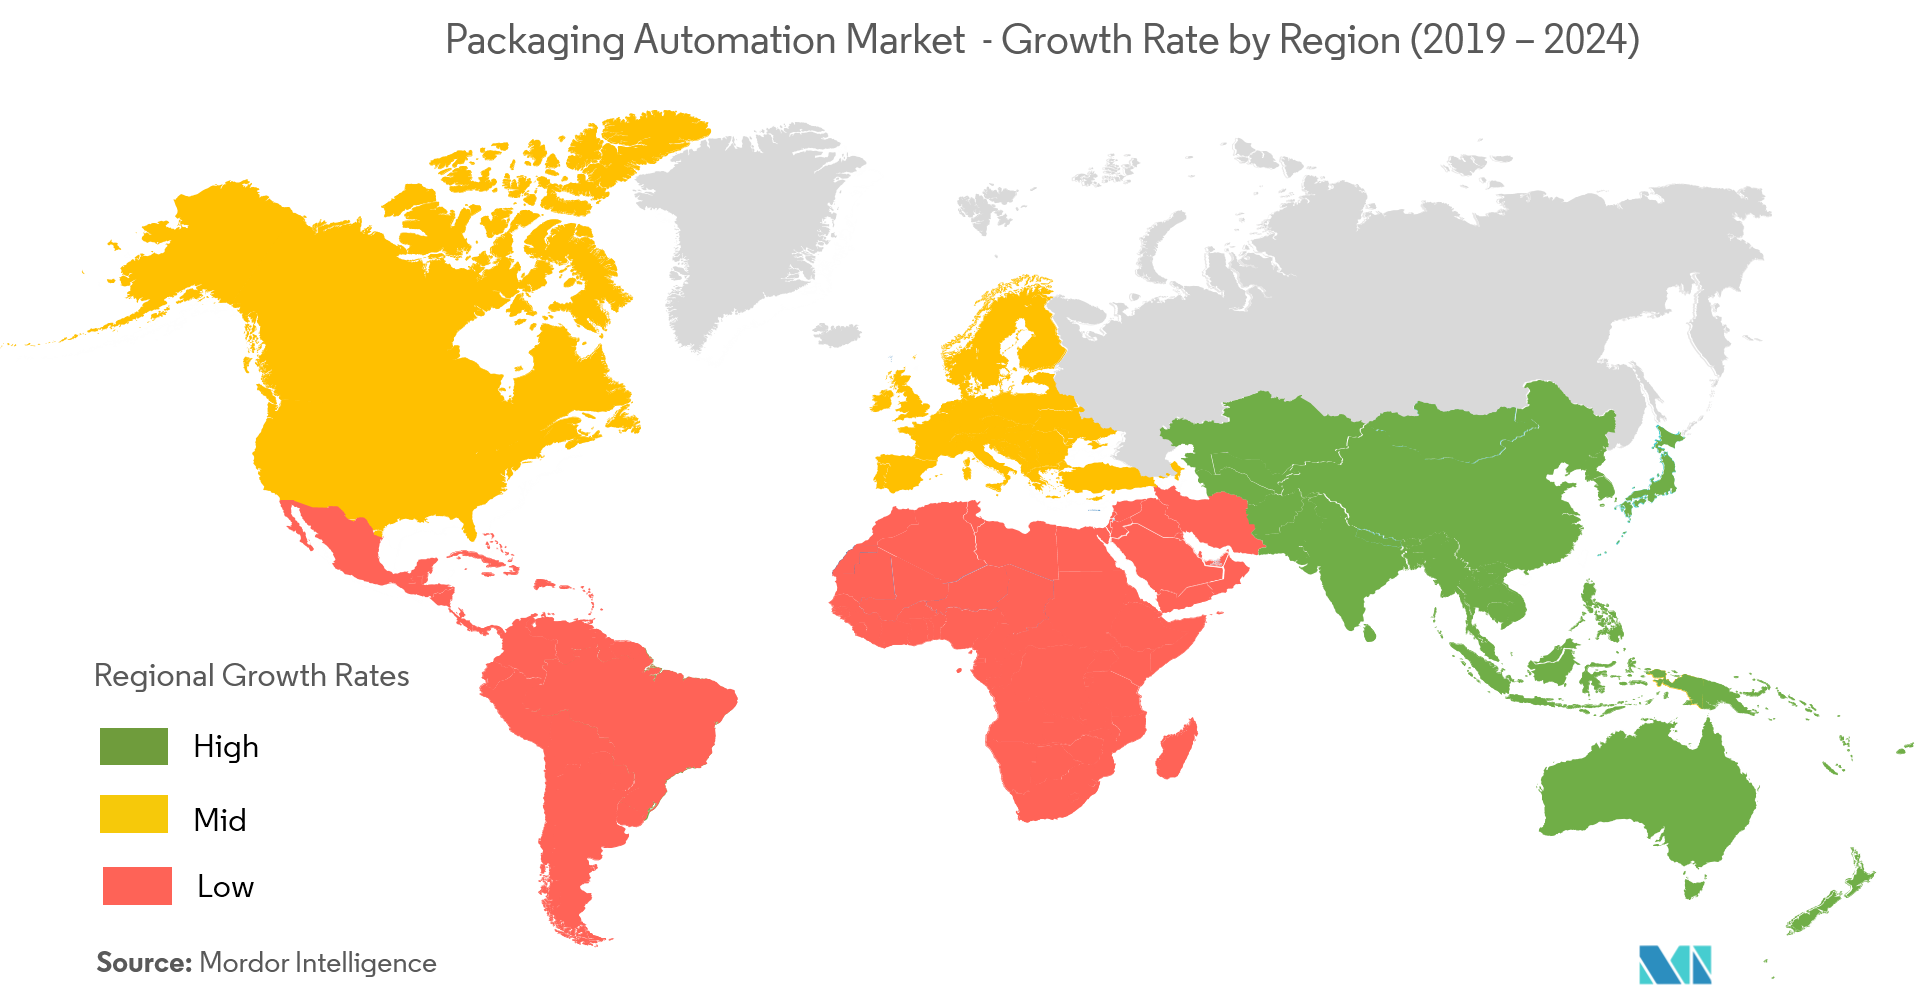 Regional Growth_Packaging Automation Market